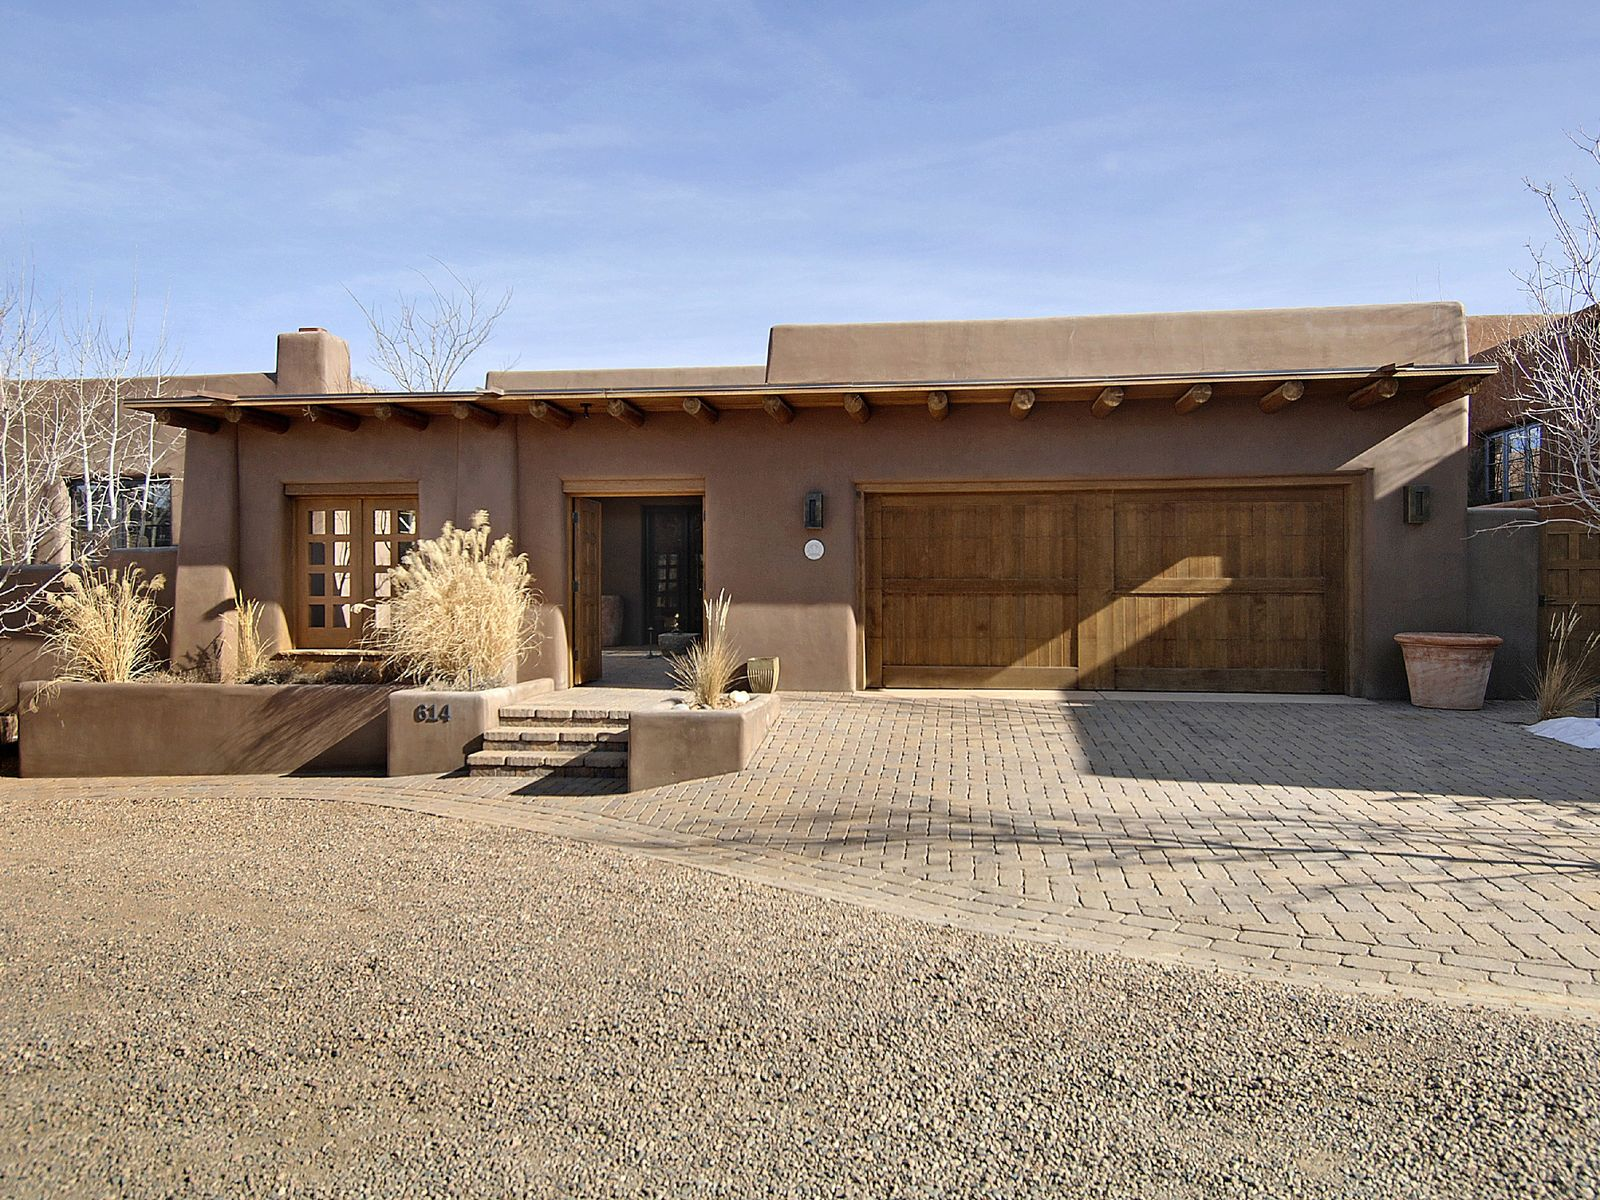 614 Garcia Street, Santa Fe NM Single Family Home - Santa Fe Real Estate